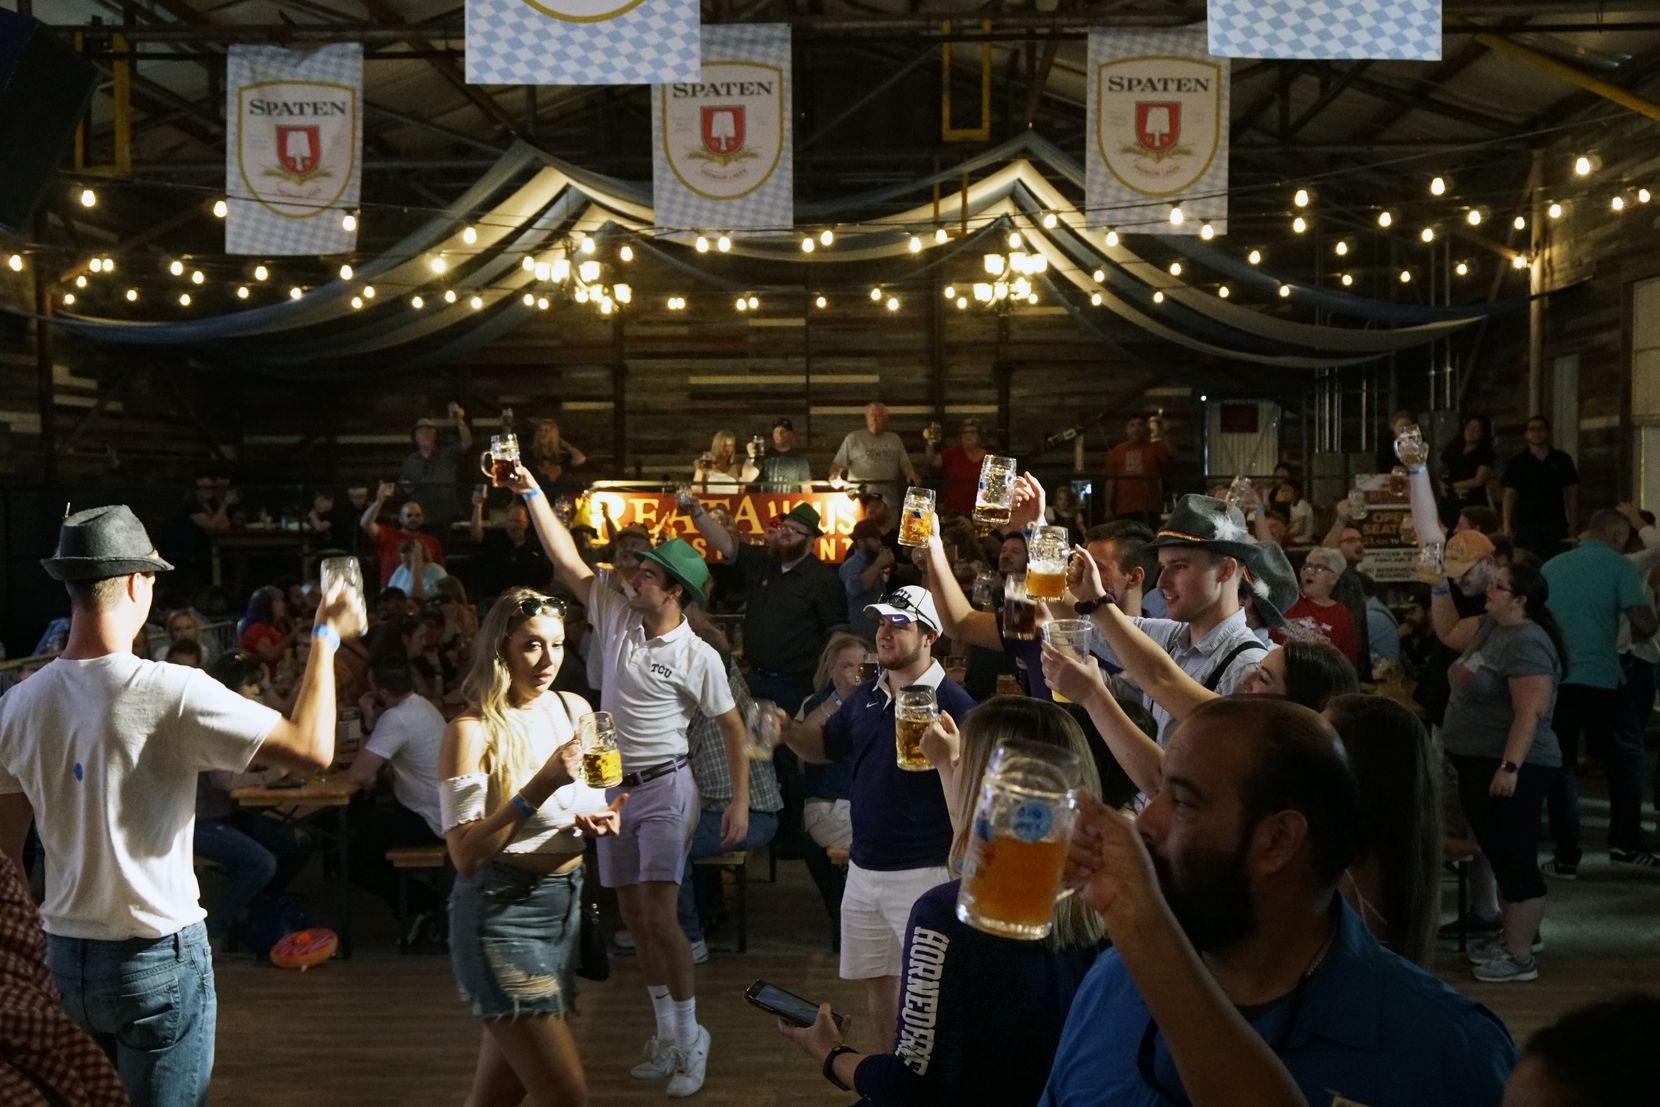 """People toast during the """"Ein Prosit"""" sing-a-long at the 2018 Octoberfest at Panther Island in Fort Worth. The 2021 event will be held Sept. 23-25."""